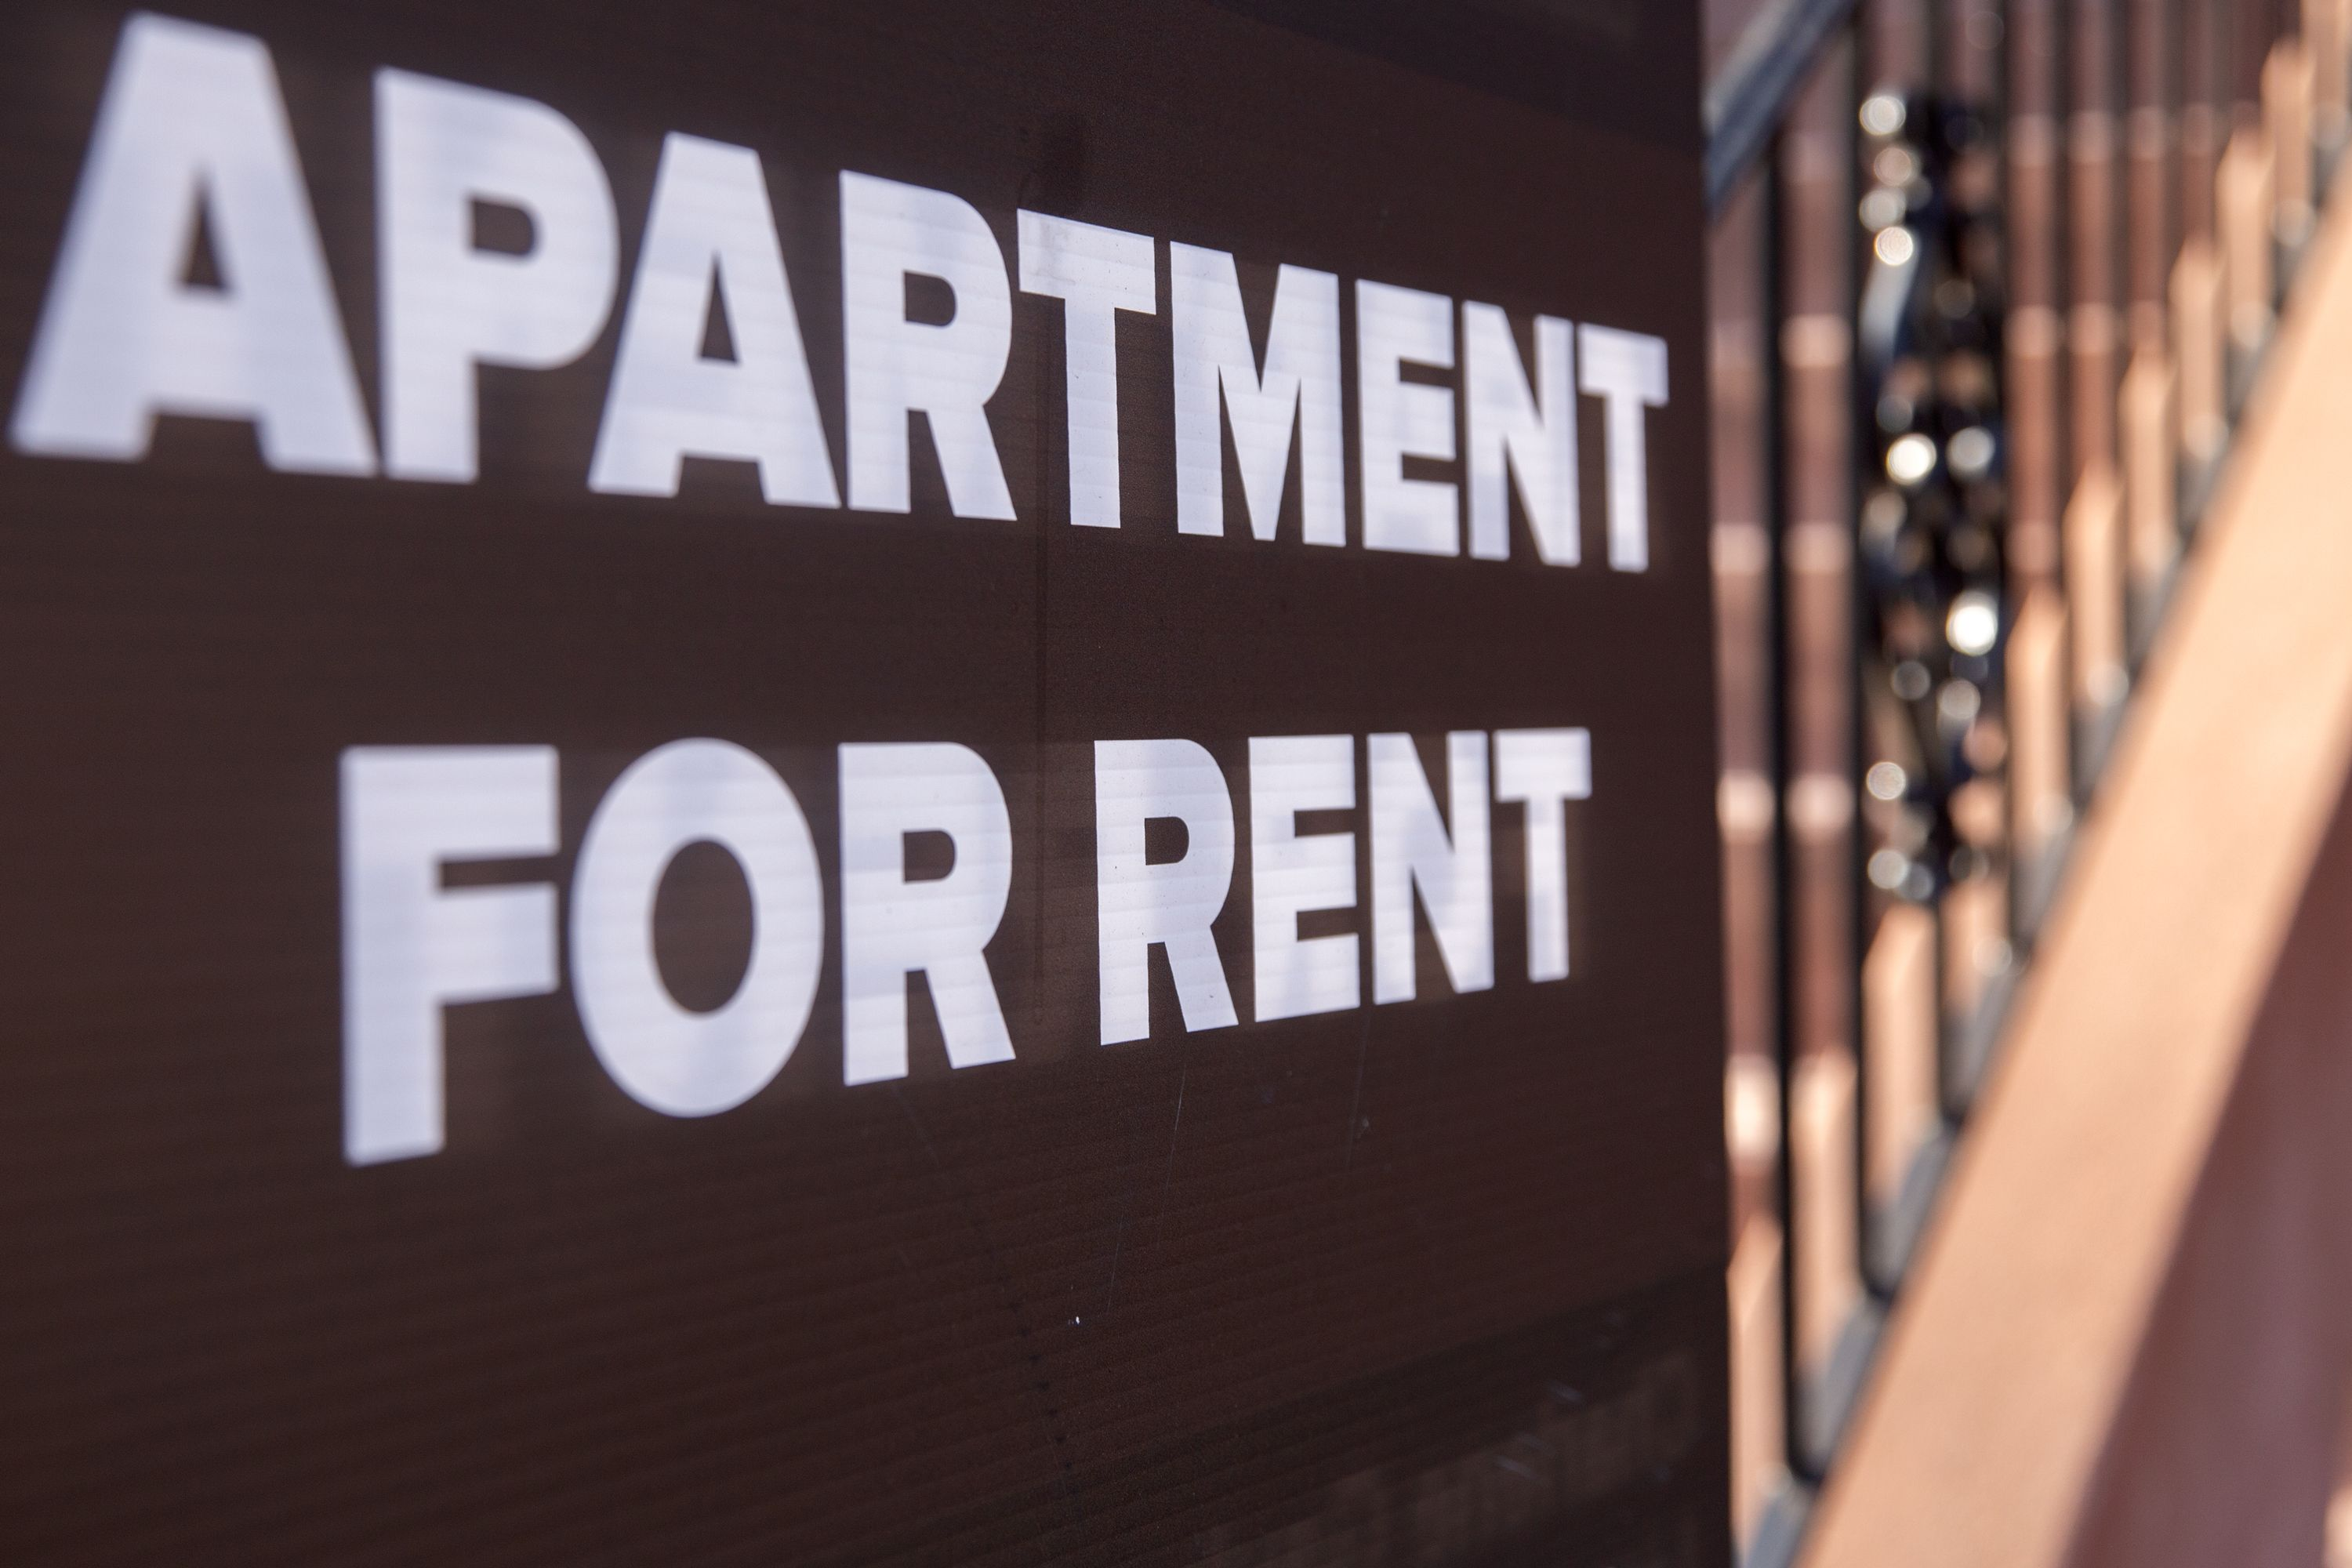 A for-rent sign in Bed-Stuy, Brooklyn.